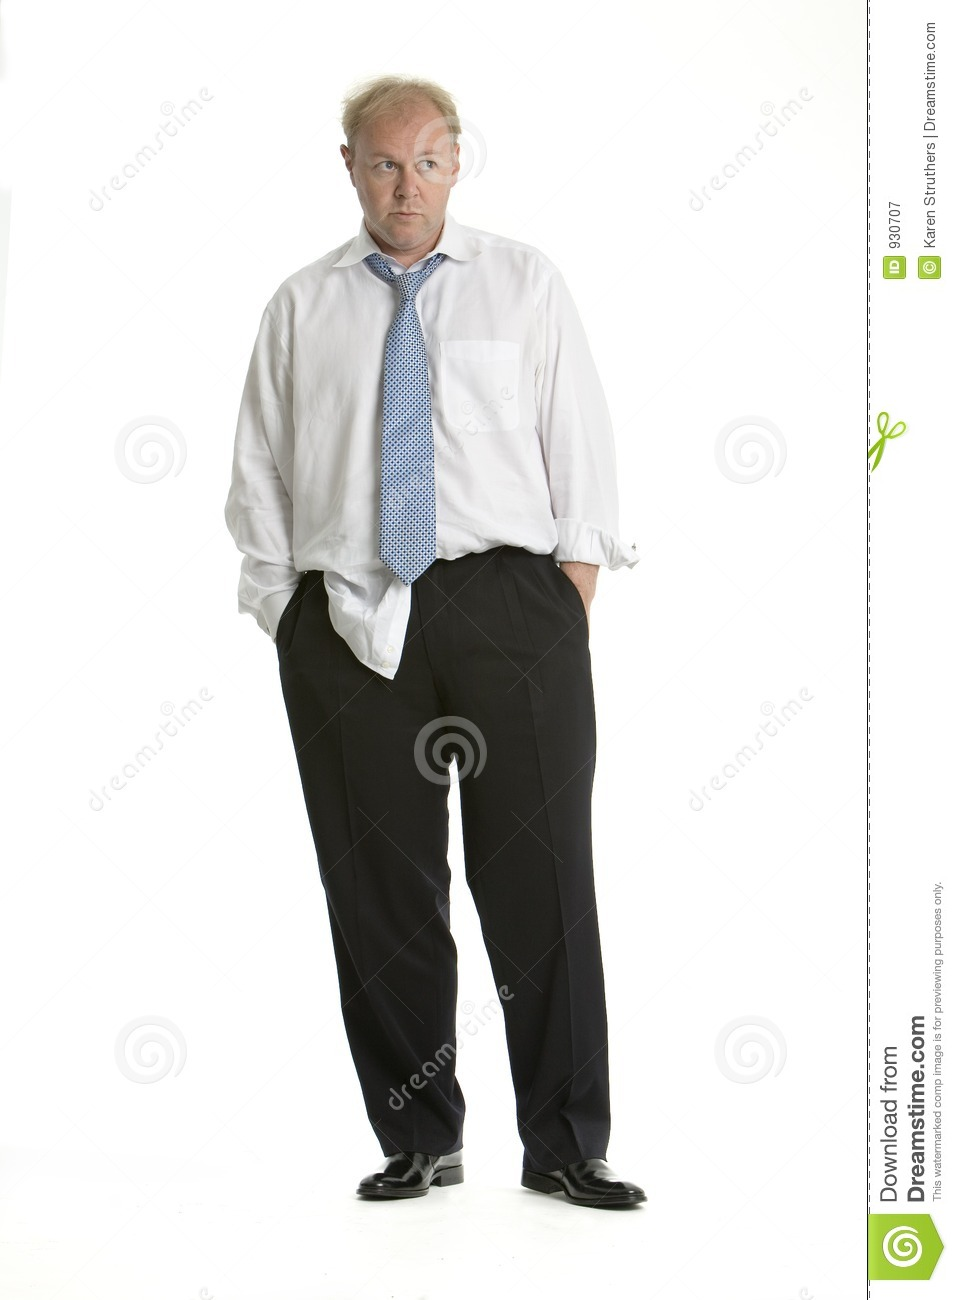 Distracted And Rumpled Business Man Royalty Free Stock Photography ...